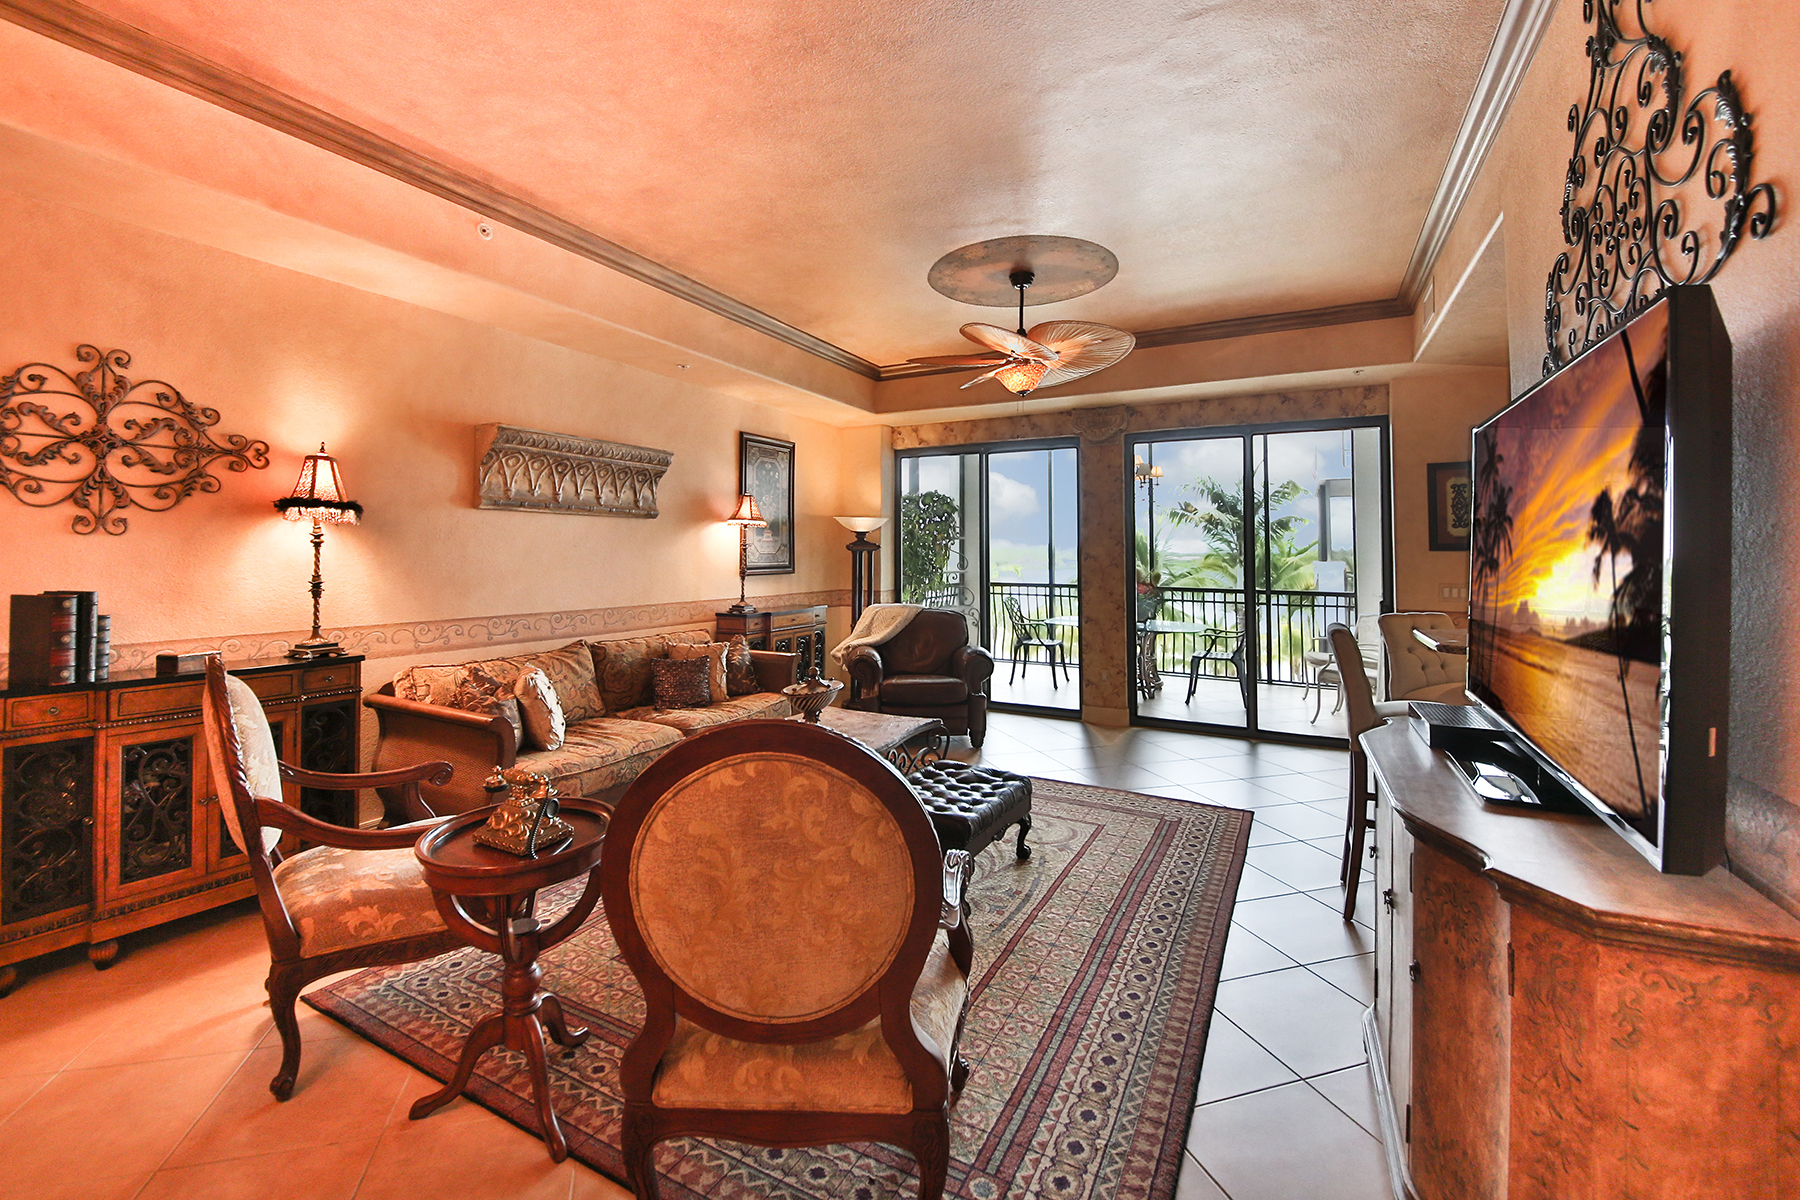 Condominium for Sale at MIRASOL - MIROMAR LAKES BEACH AND GULF CLUB 10731 Mirasol Dr 405 Miromar Lakes, Florida, 33913 United States